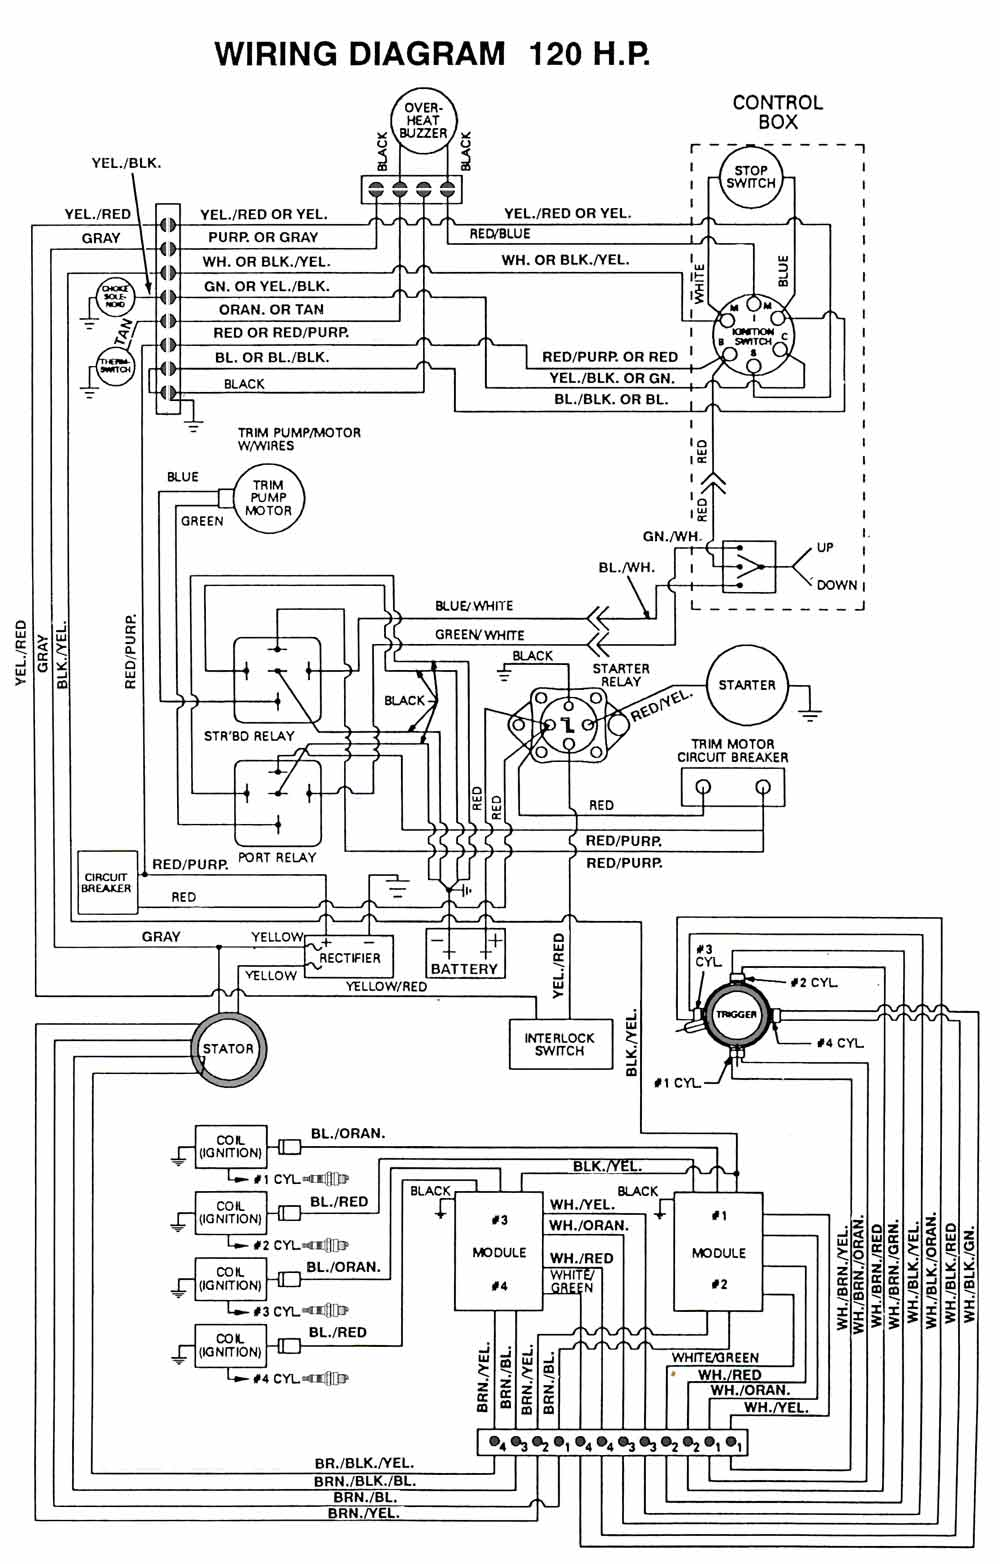 Chrysler Outboard Wiring Diagrams Mastertech Marine 97 Toyota Power Antenna Diagram Force 120 Hp Thru 1991a Models Engine